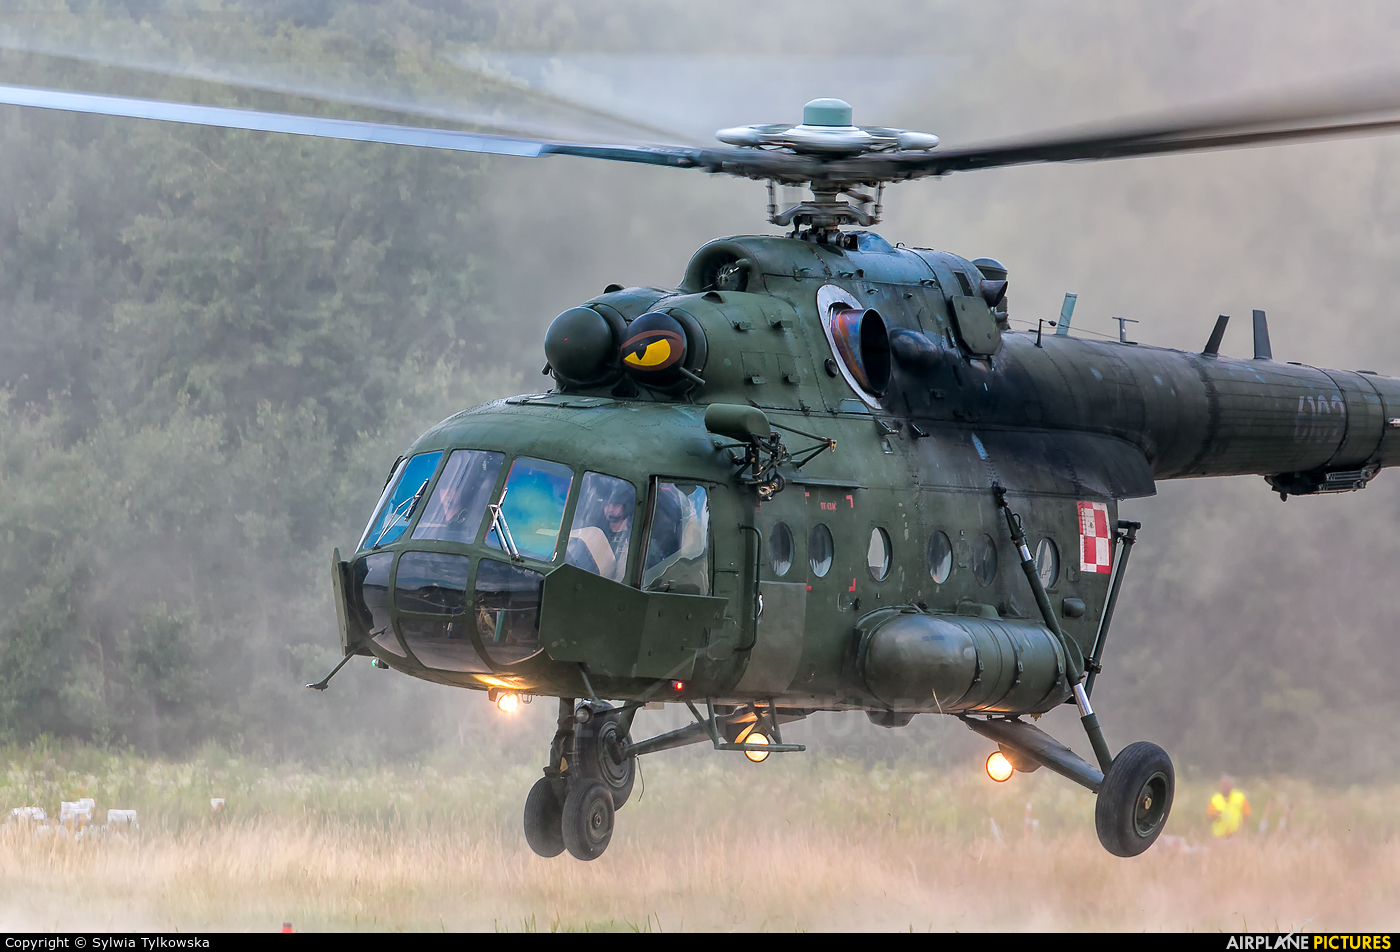 Poland - Army 6102 aircraft at Katowice Muchowiec